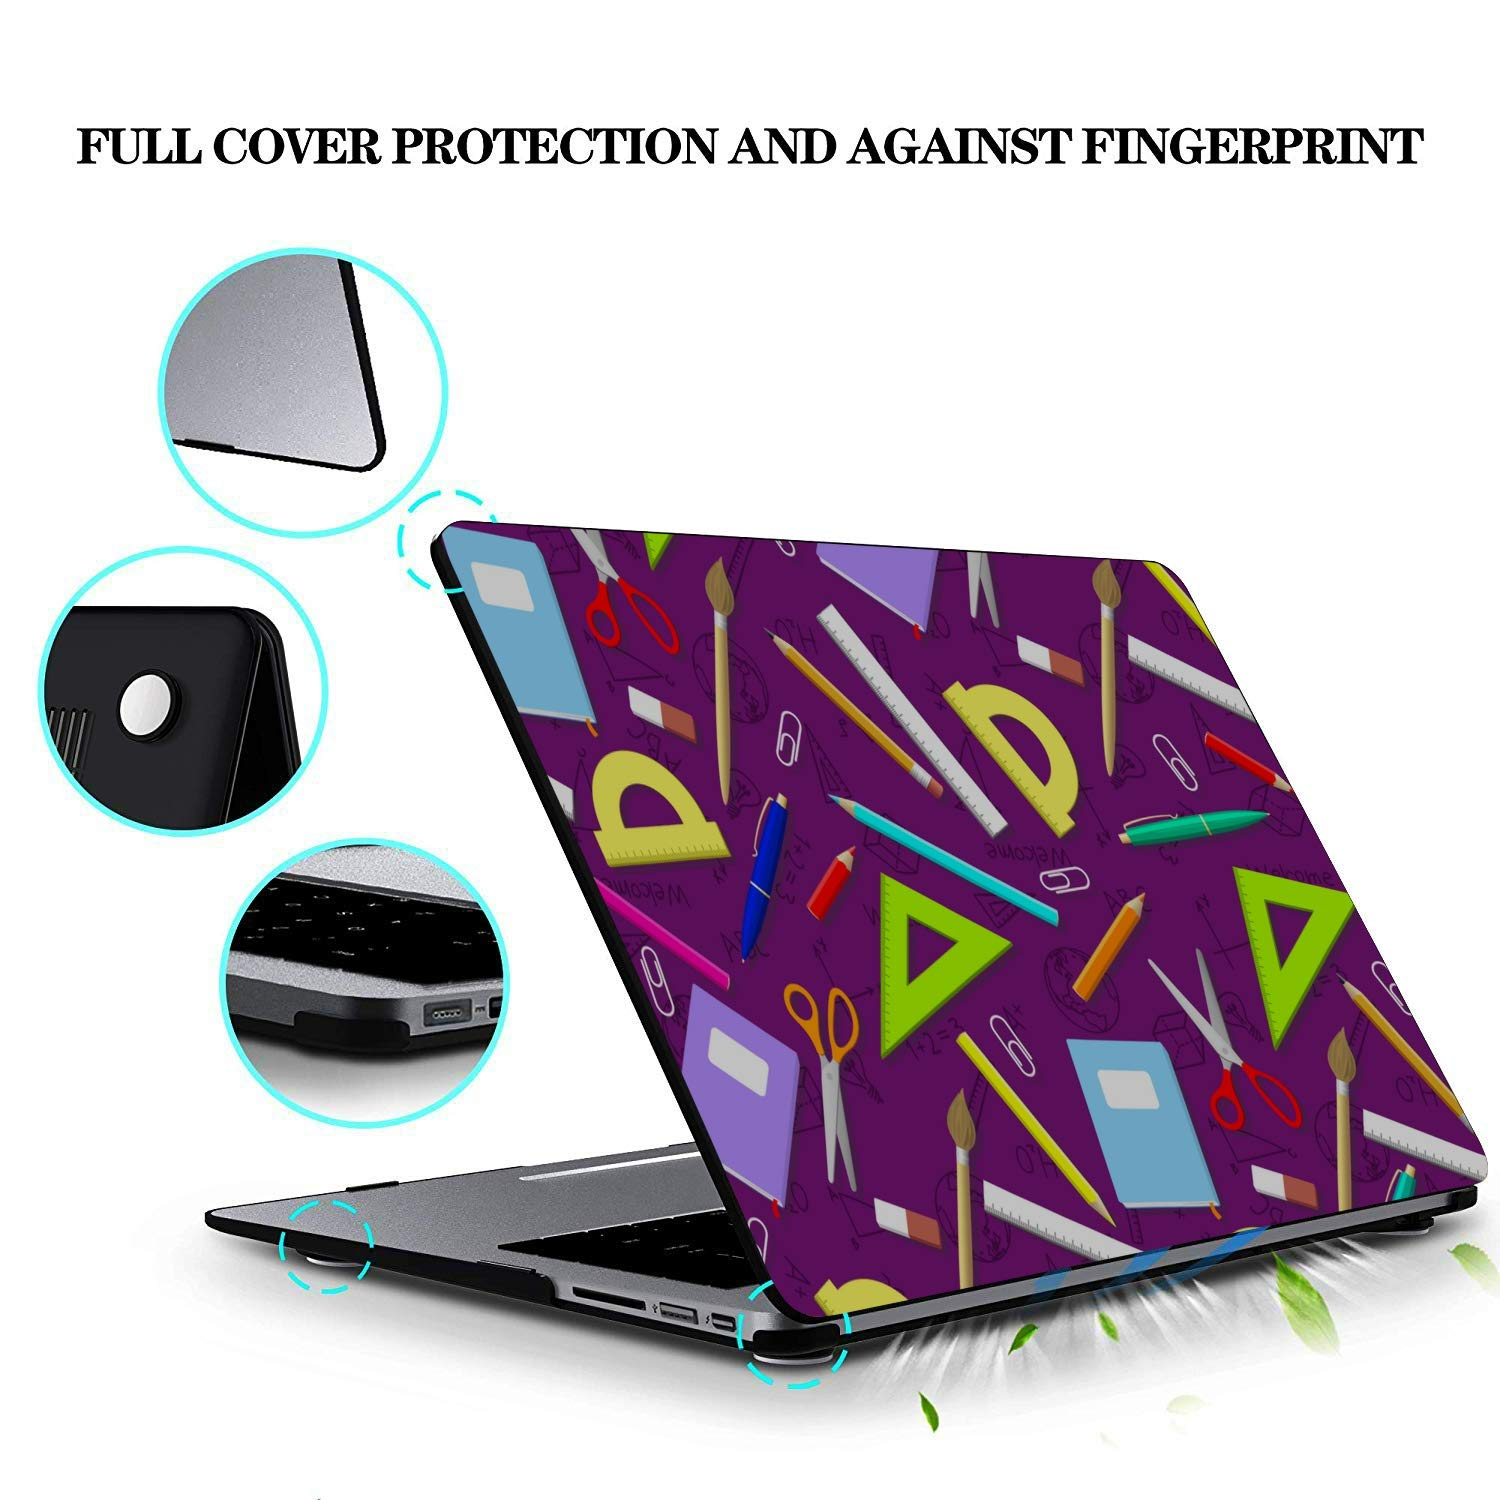 Mac Cases School Supplies Cute Stationery Bag Plastic Hard Shell Compatible Mac Air 11 Pro 13 15 New MacBook Air Case Protection for MacBook 2016-2019 Version